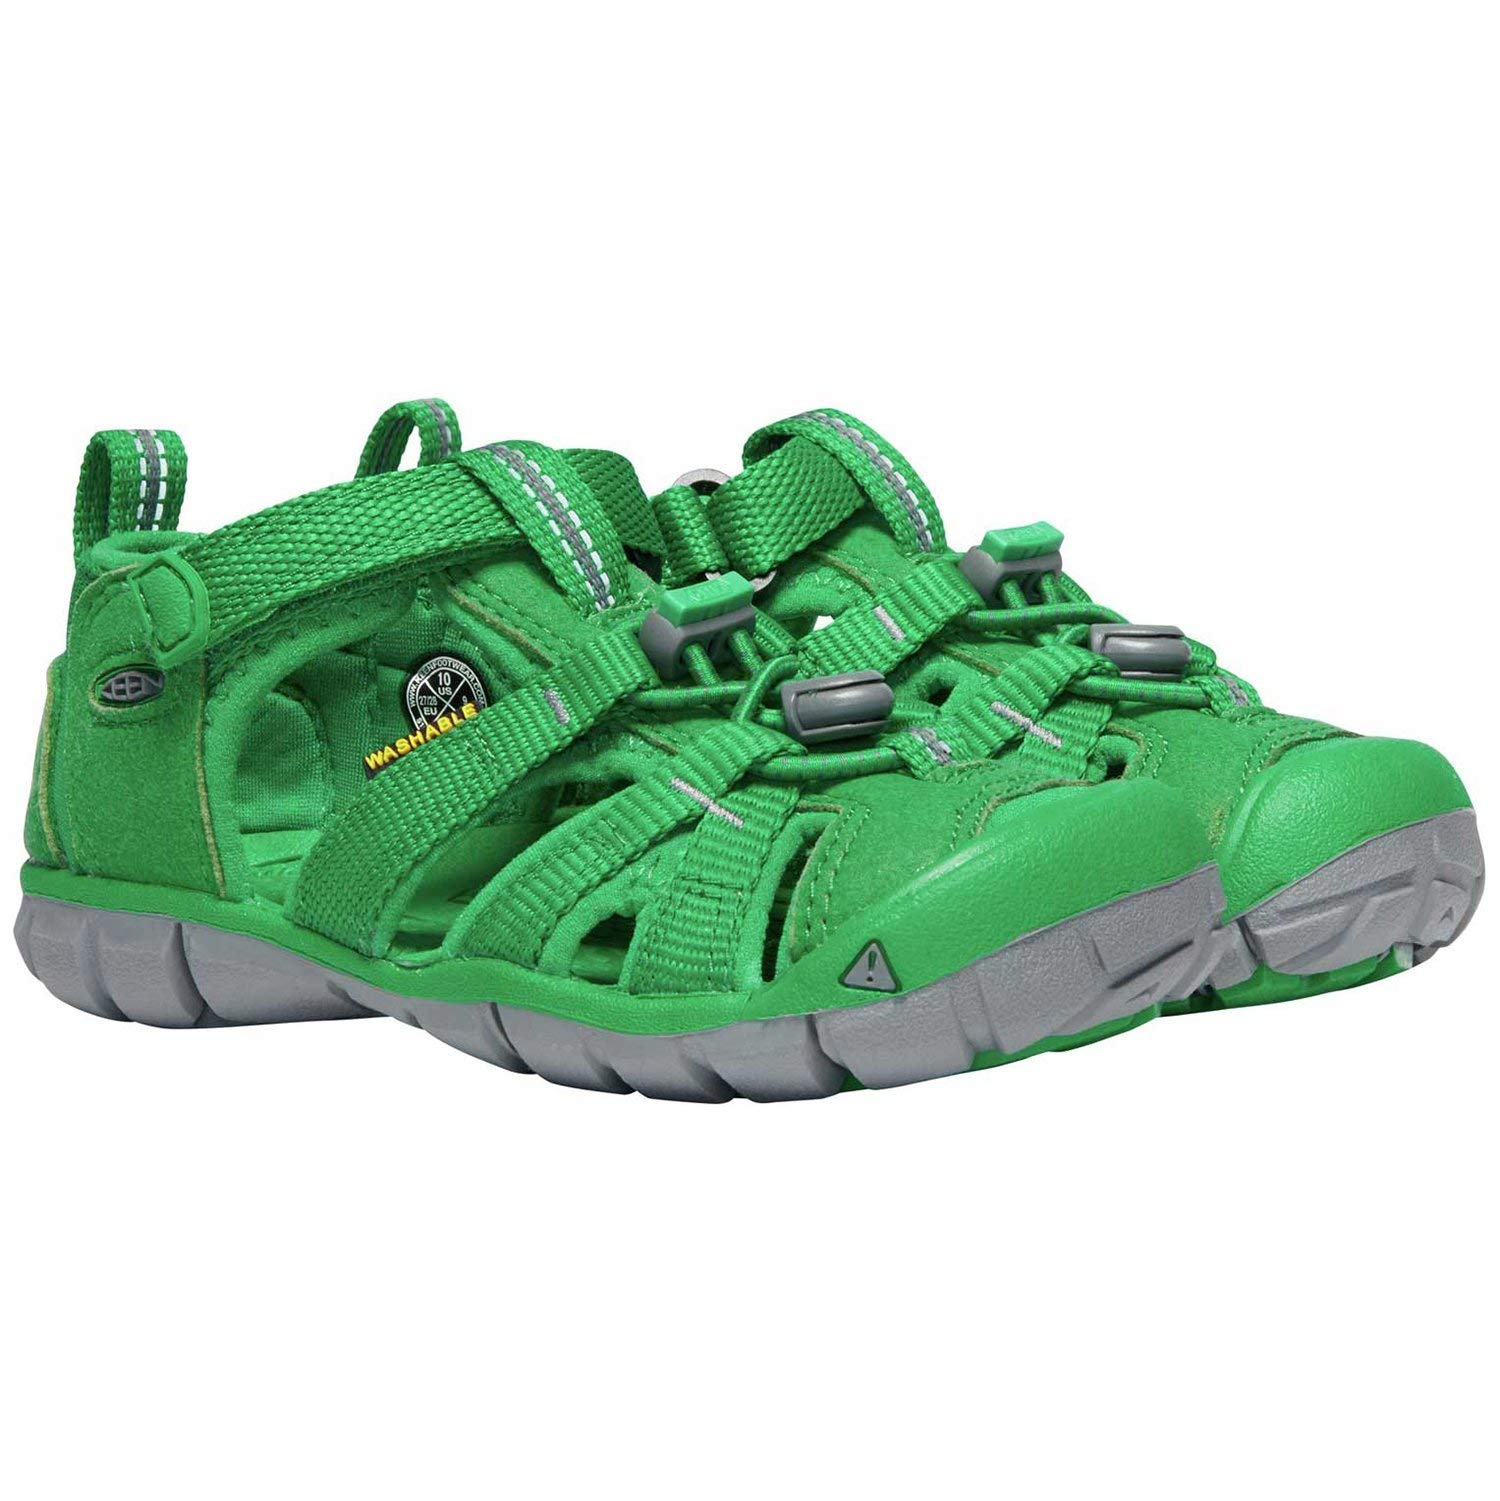 Keen - 1020680-1020680 - Color: Green - Size: 11.0 by Keen (Image #2)